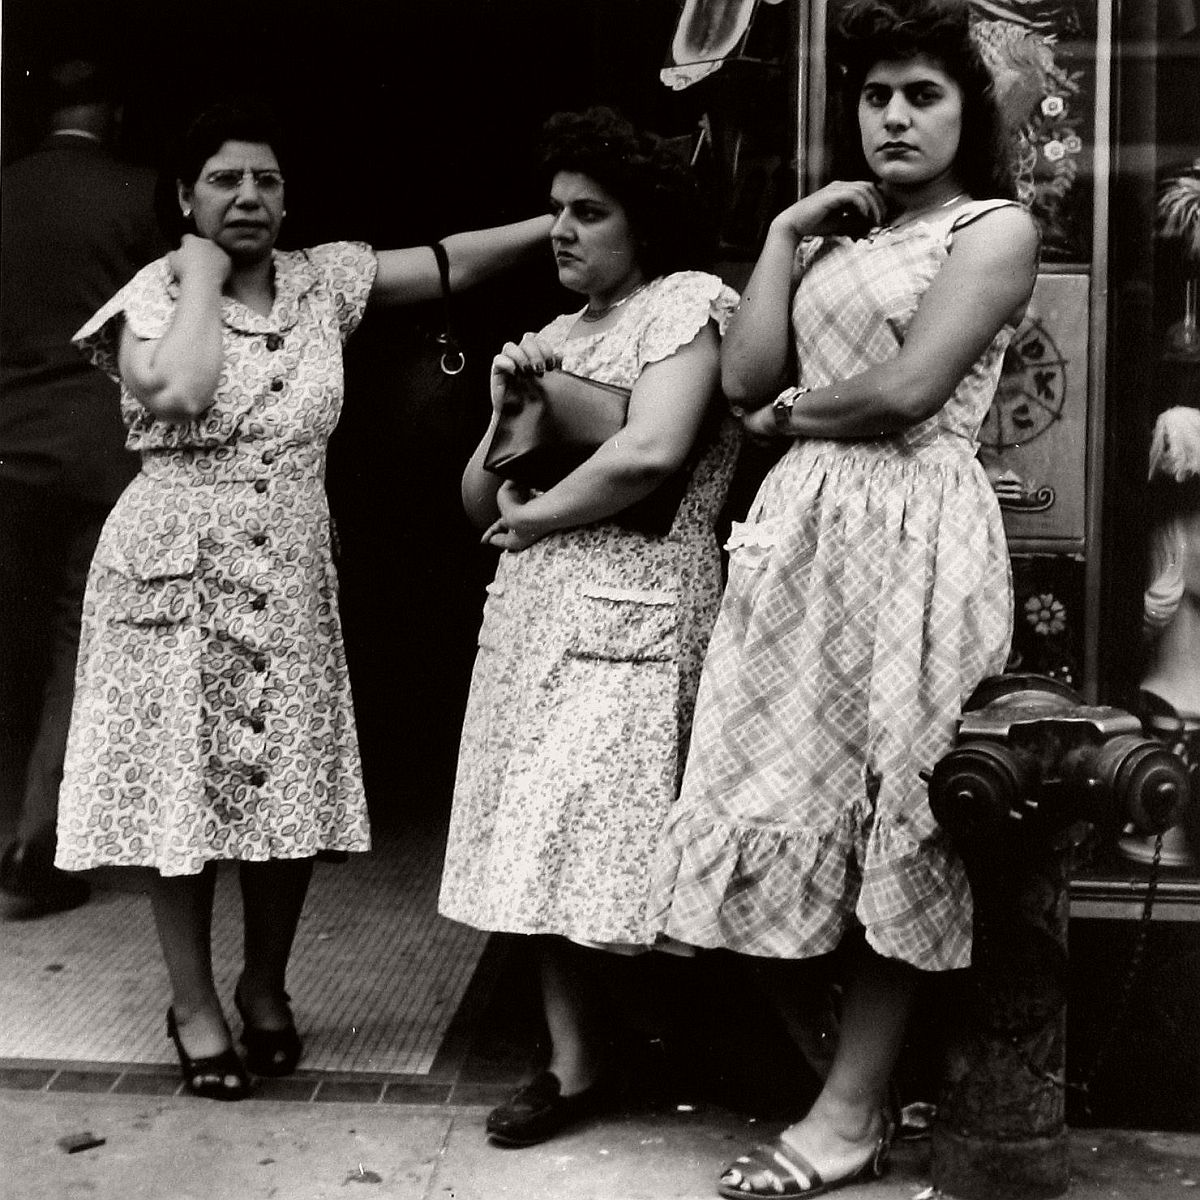 Three Ladies on 14th Street, 1948